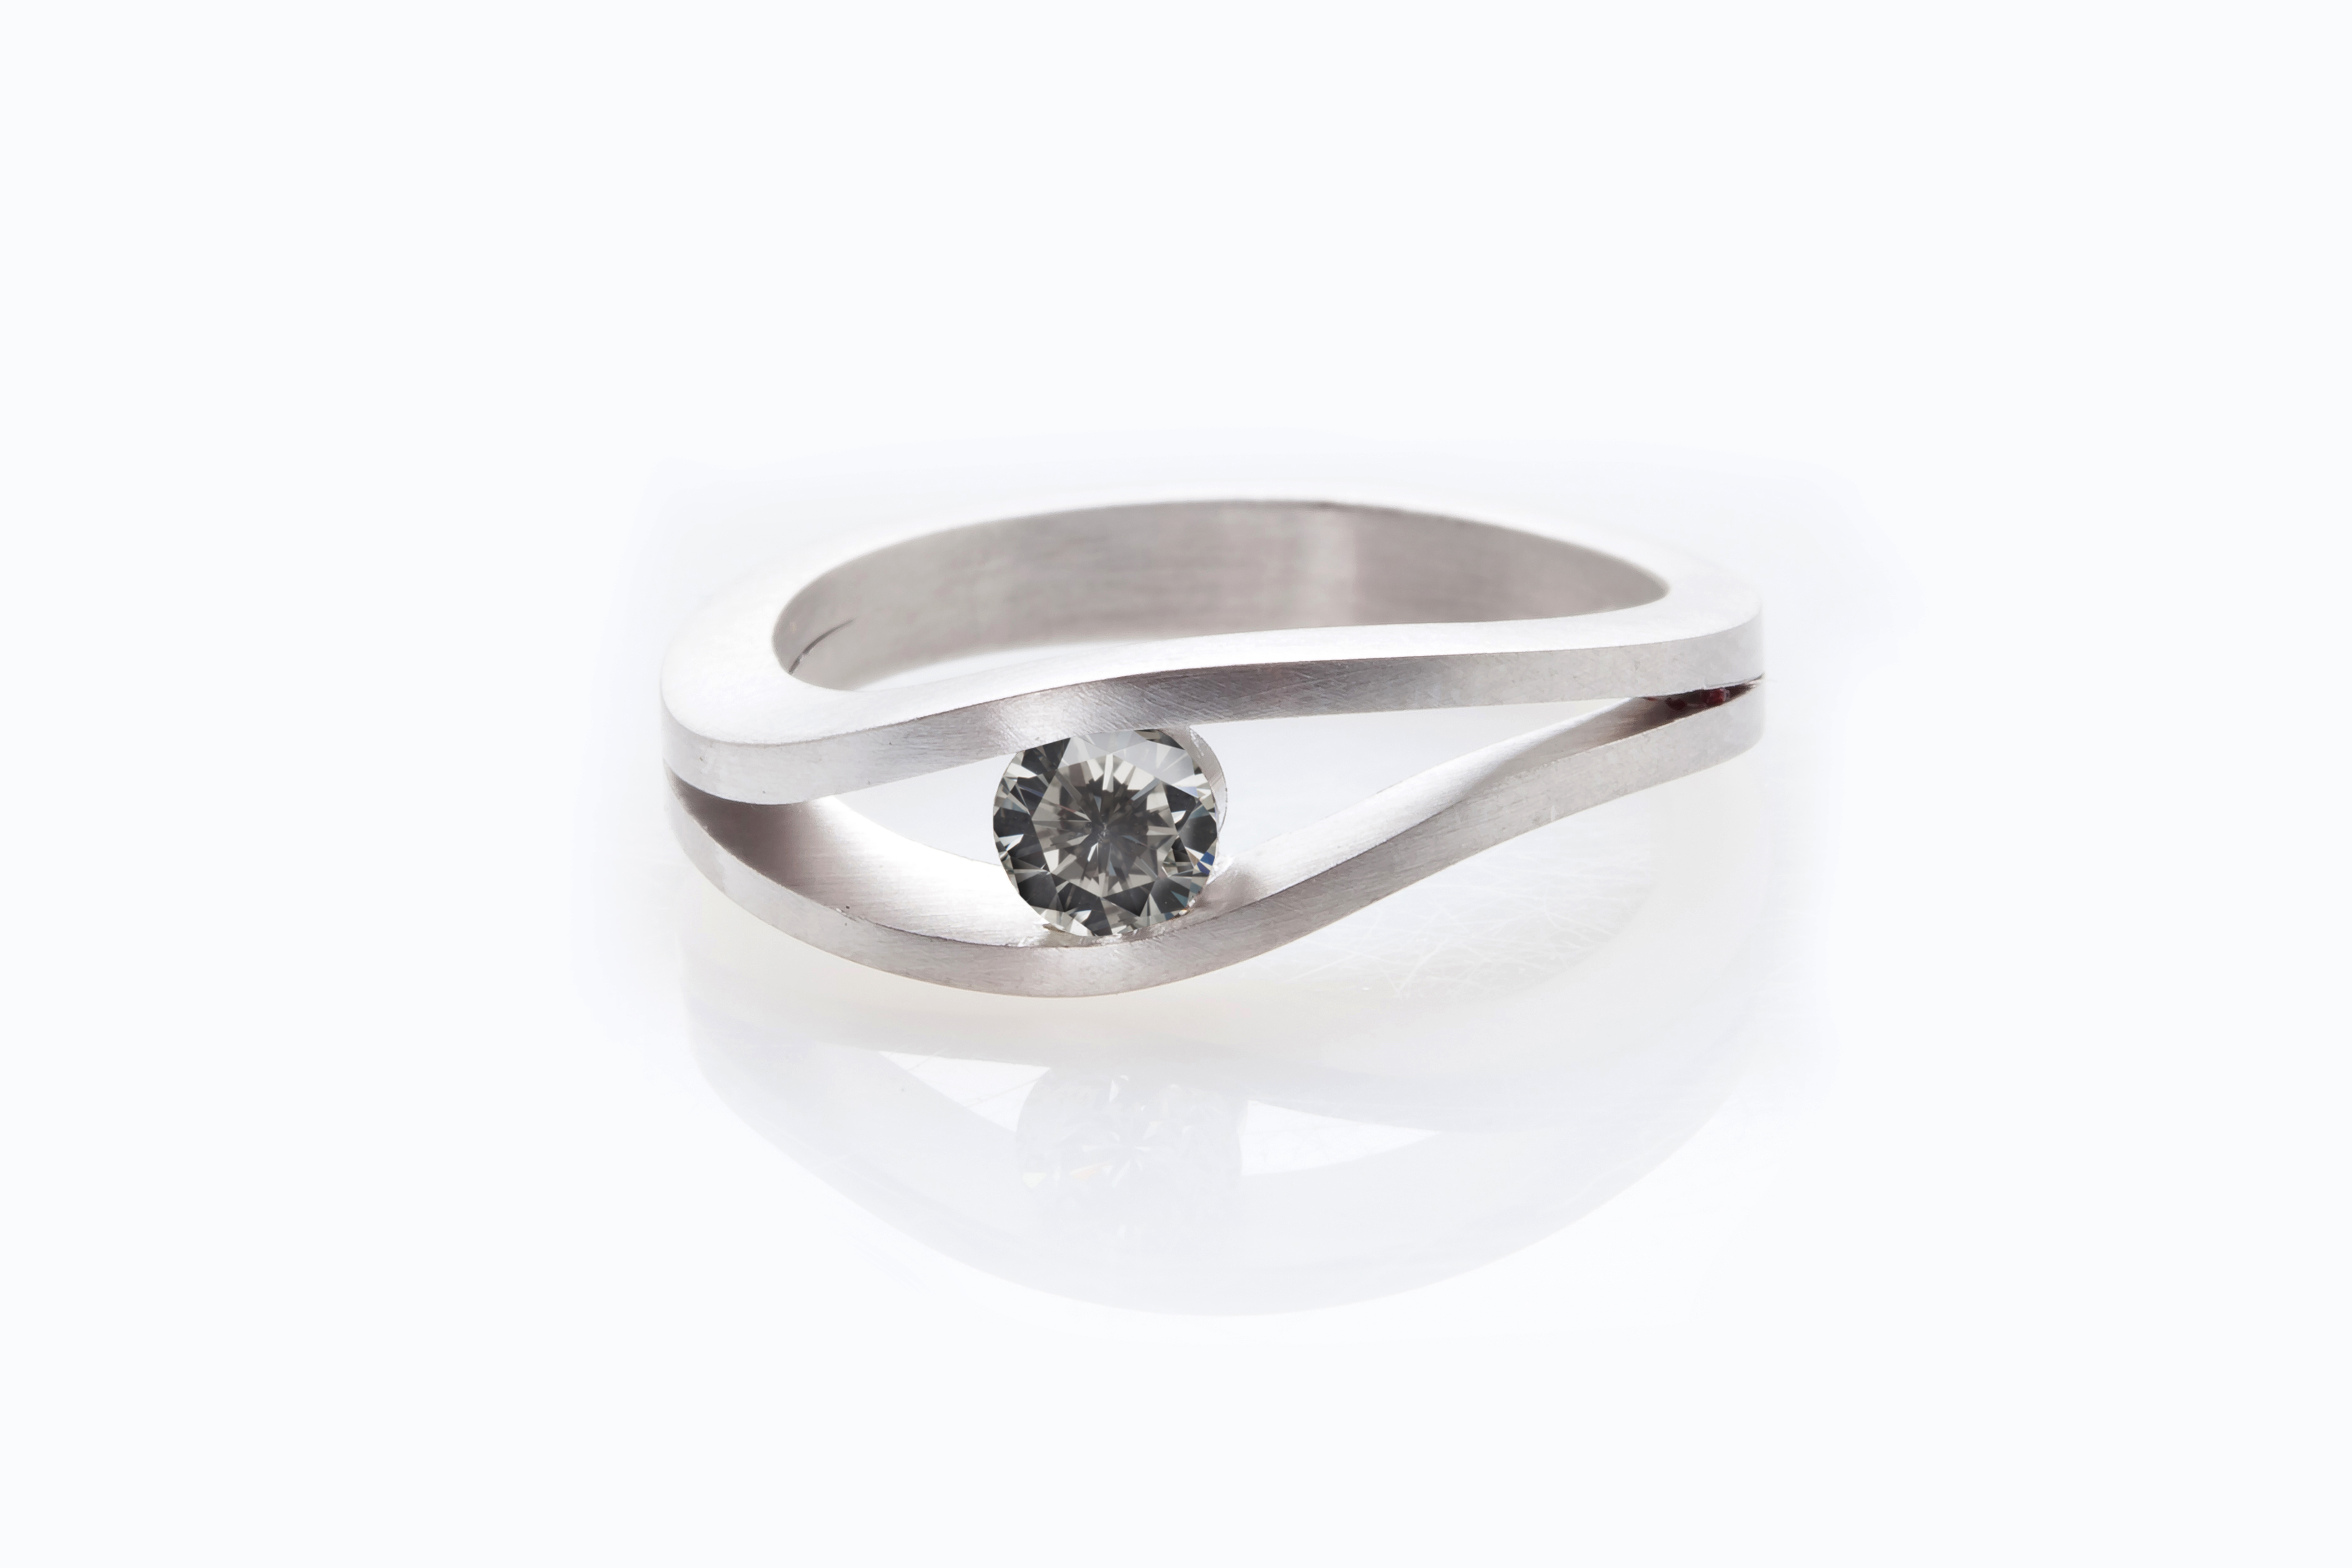 Natural Grey Diamond set in a Tension Ring